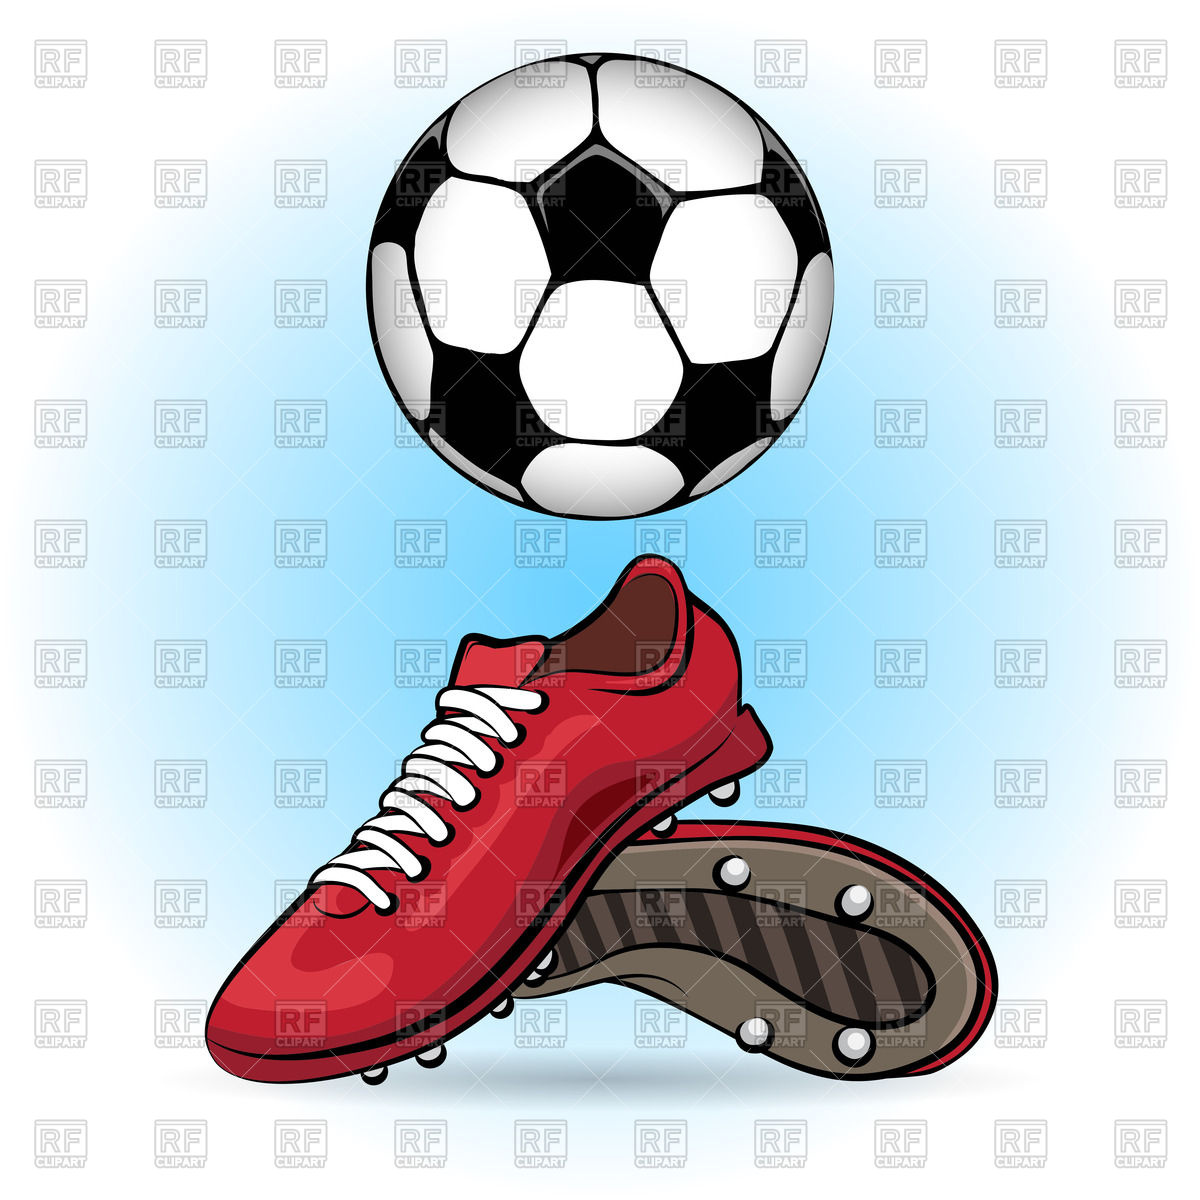 Sporting shoes and soccer ball.